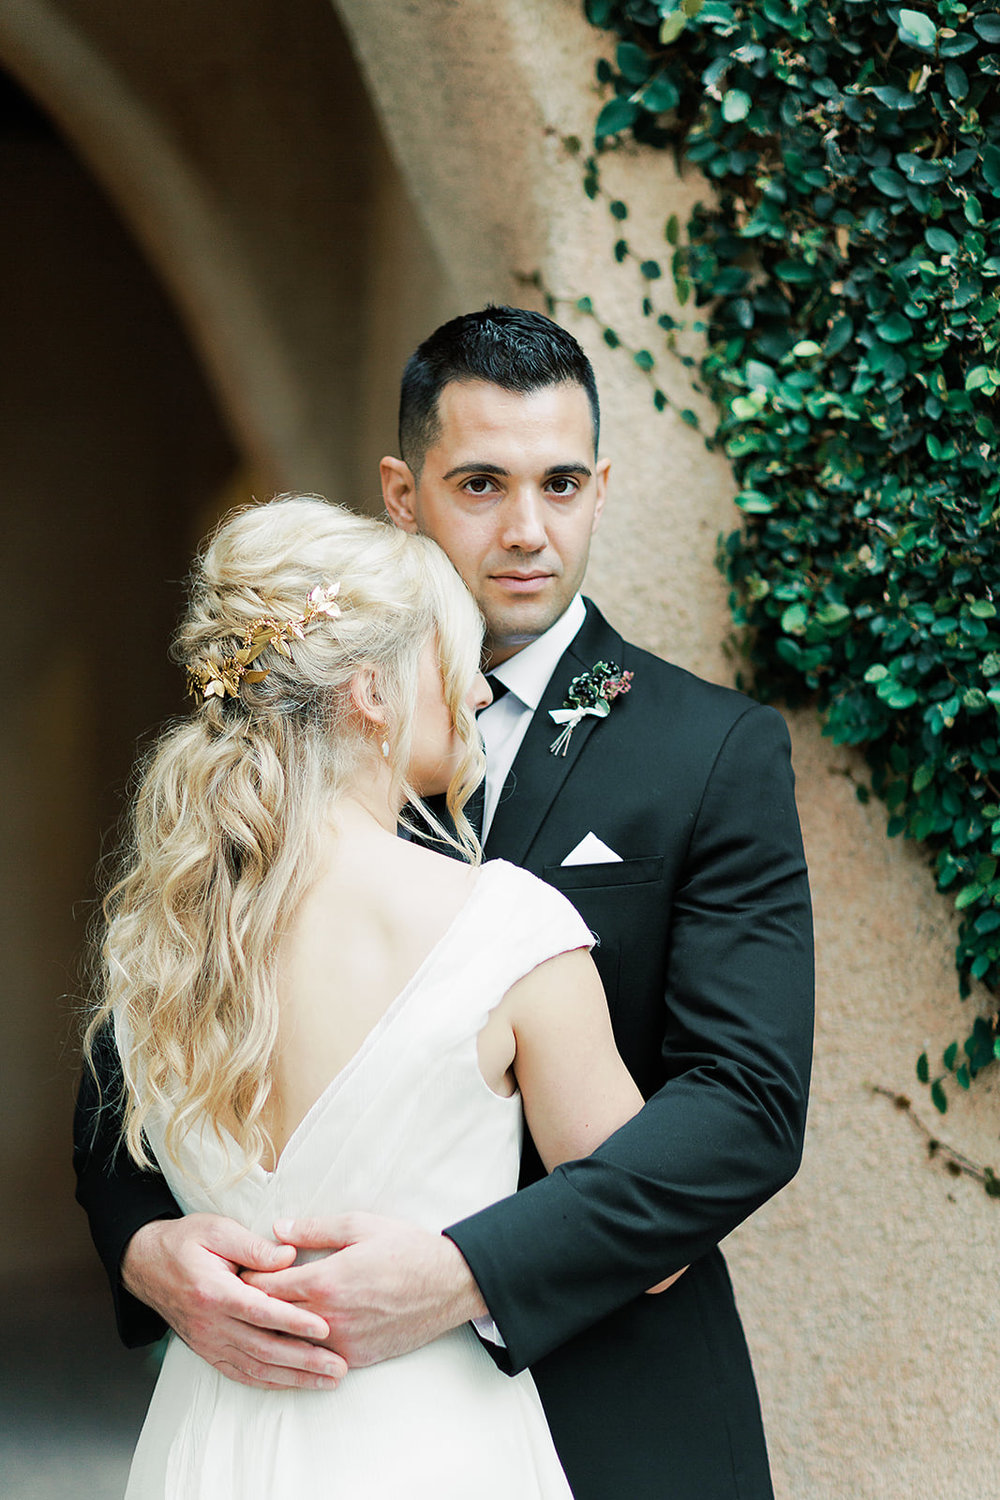 Erika_Kobziak-Tlaquepaque_Wedding-Andrew_and_Ada_Photography_2018-324.jpg